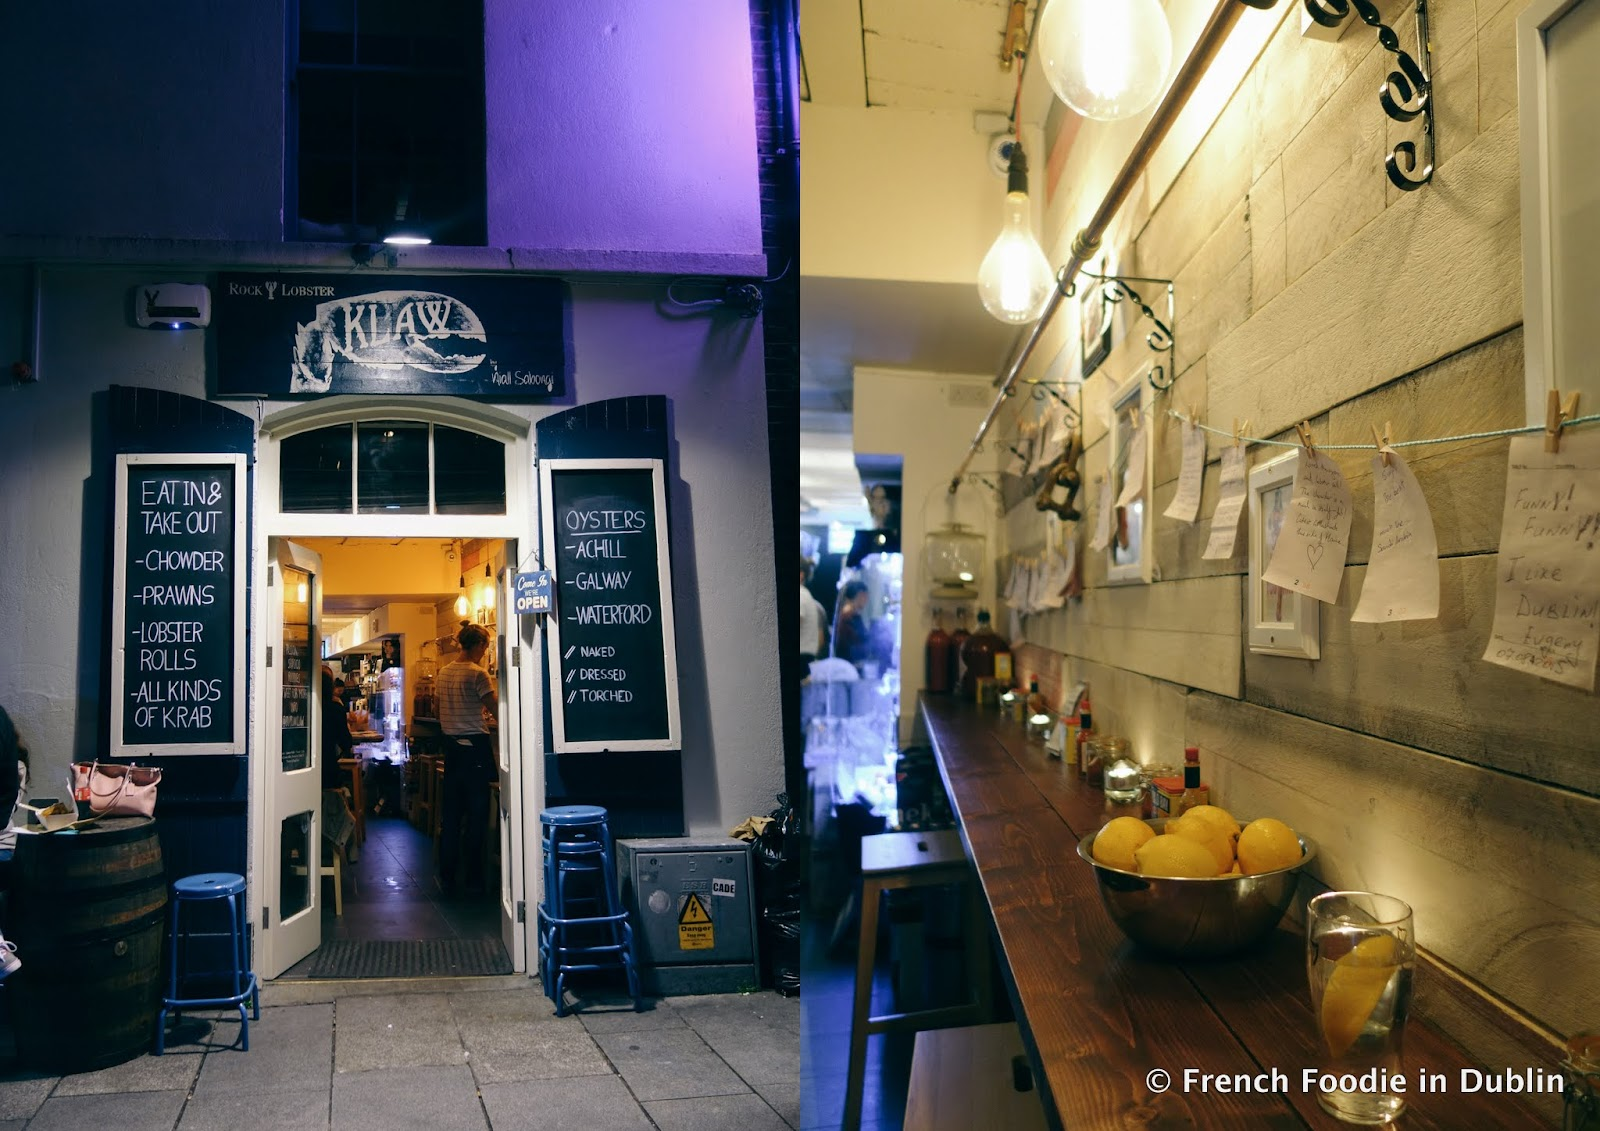 Temple bar 39 s seafood shack klaw french foodie in dublin for Bar food dublin 2